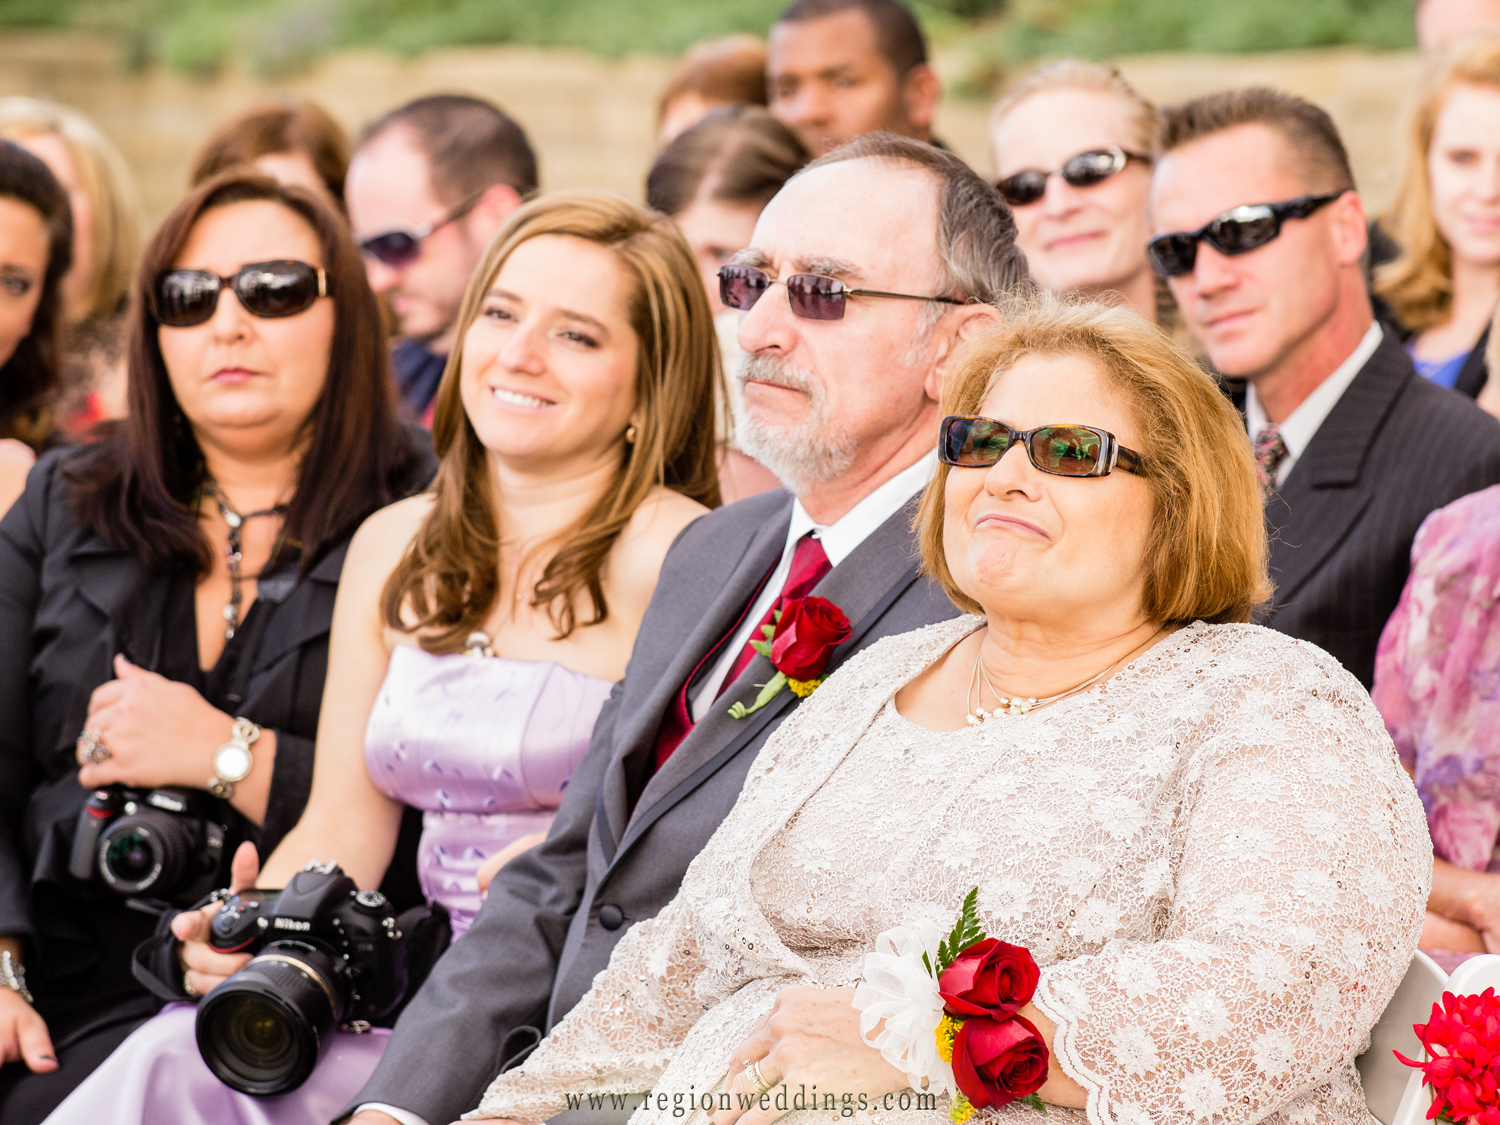 Family of the groom watch as their son and brother gets married in a Fall wedding ceremony.